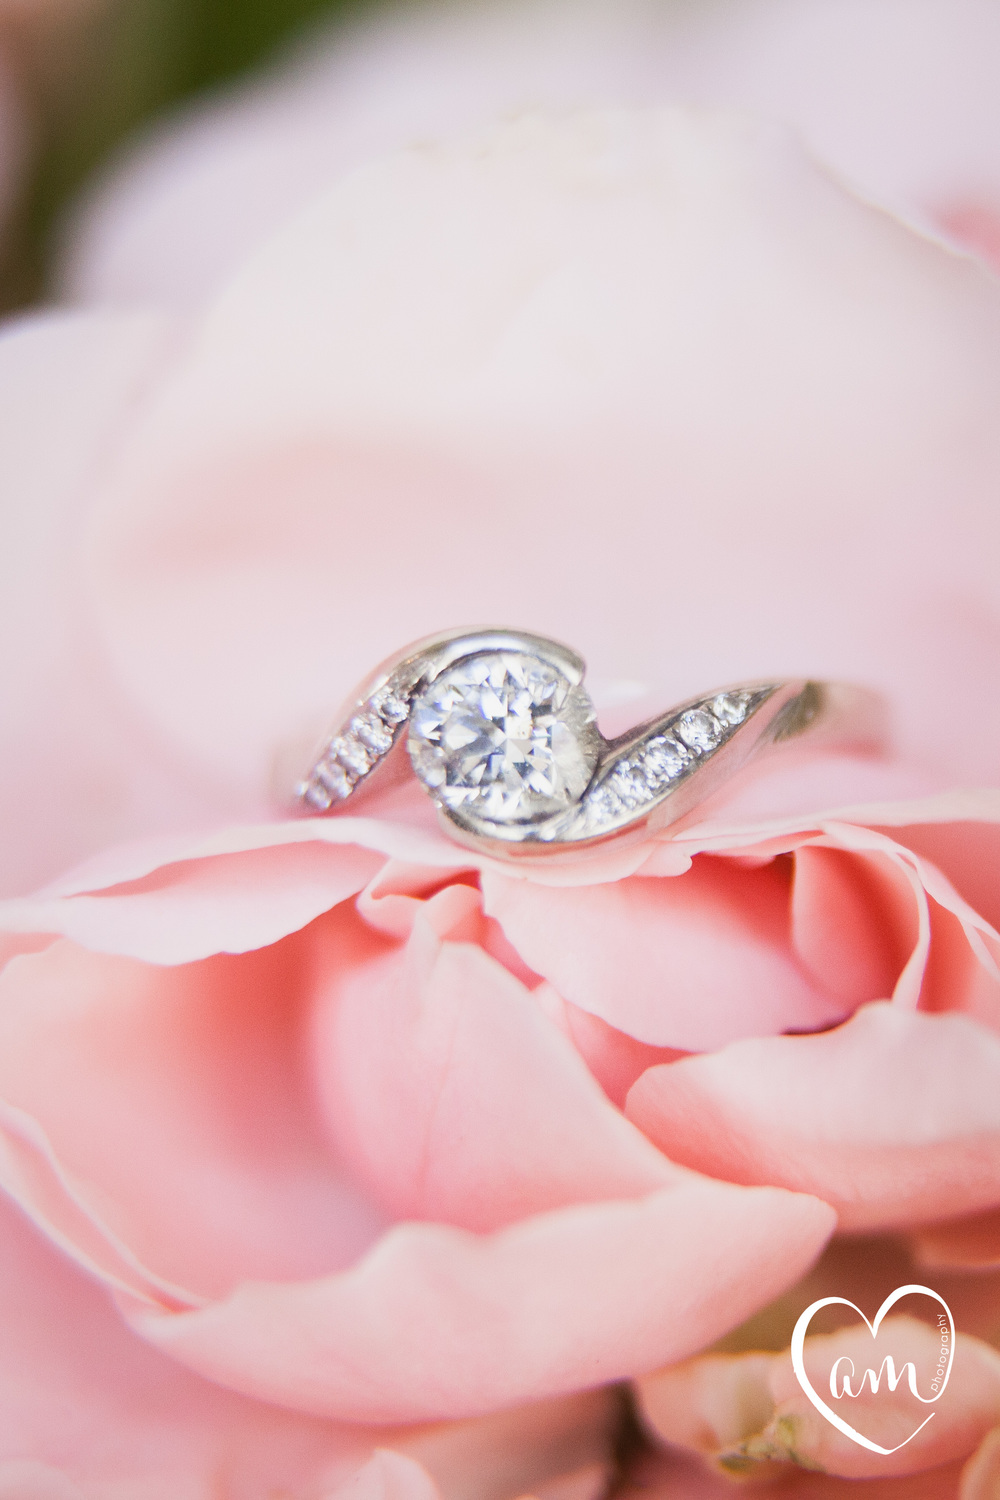 Engagement Ring photographed by Florida Destination Wedding Photographer